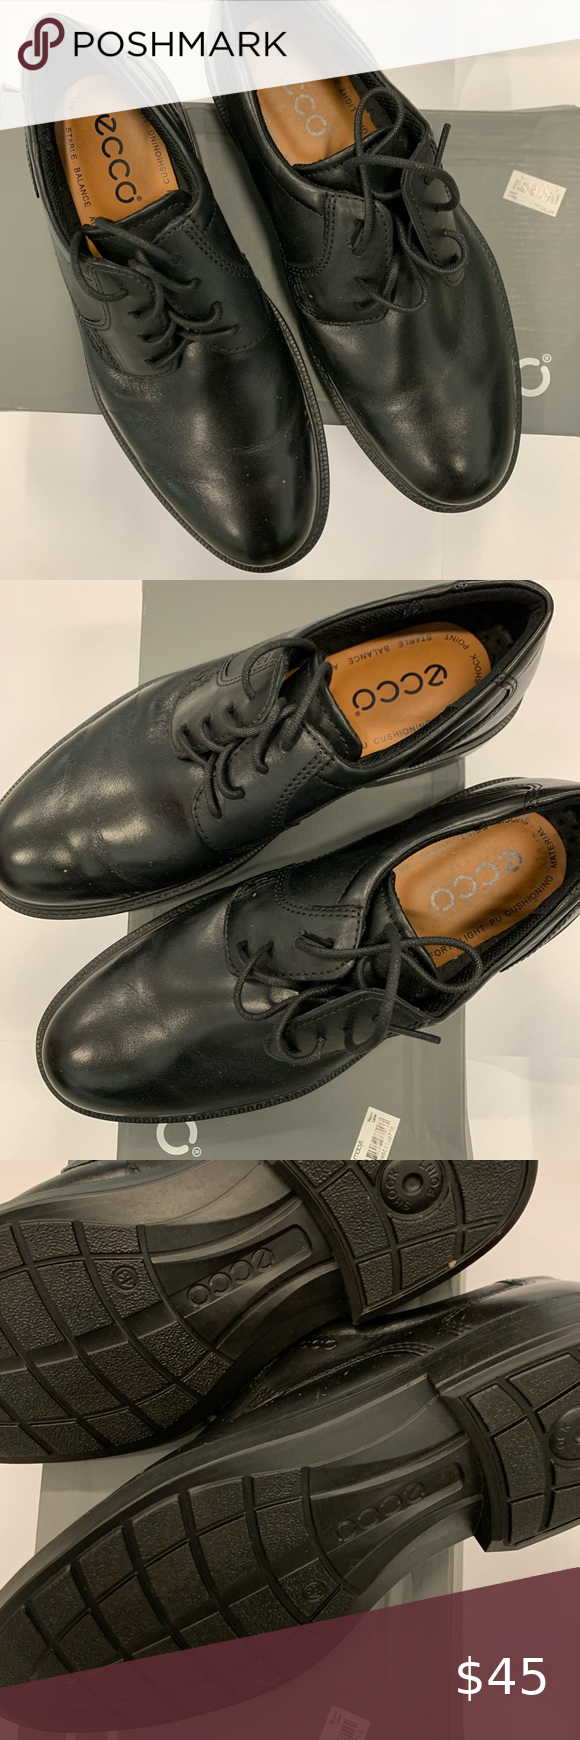 Ecco Black Size 43 Like New Shoes in